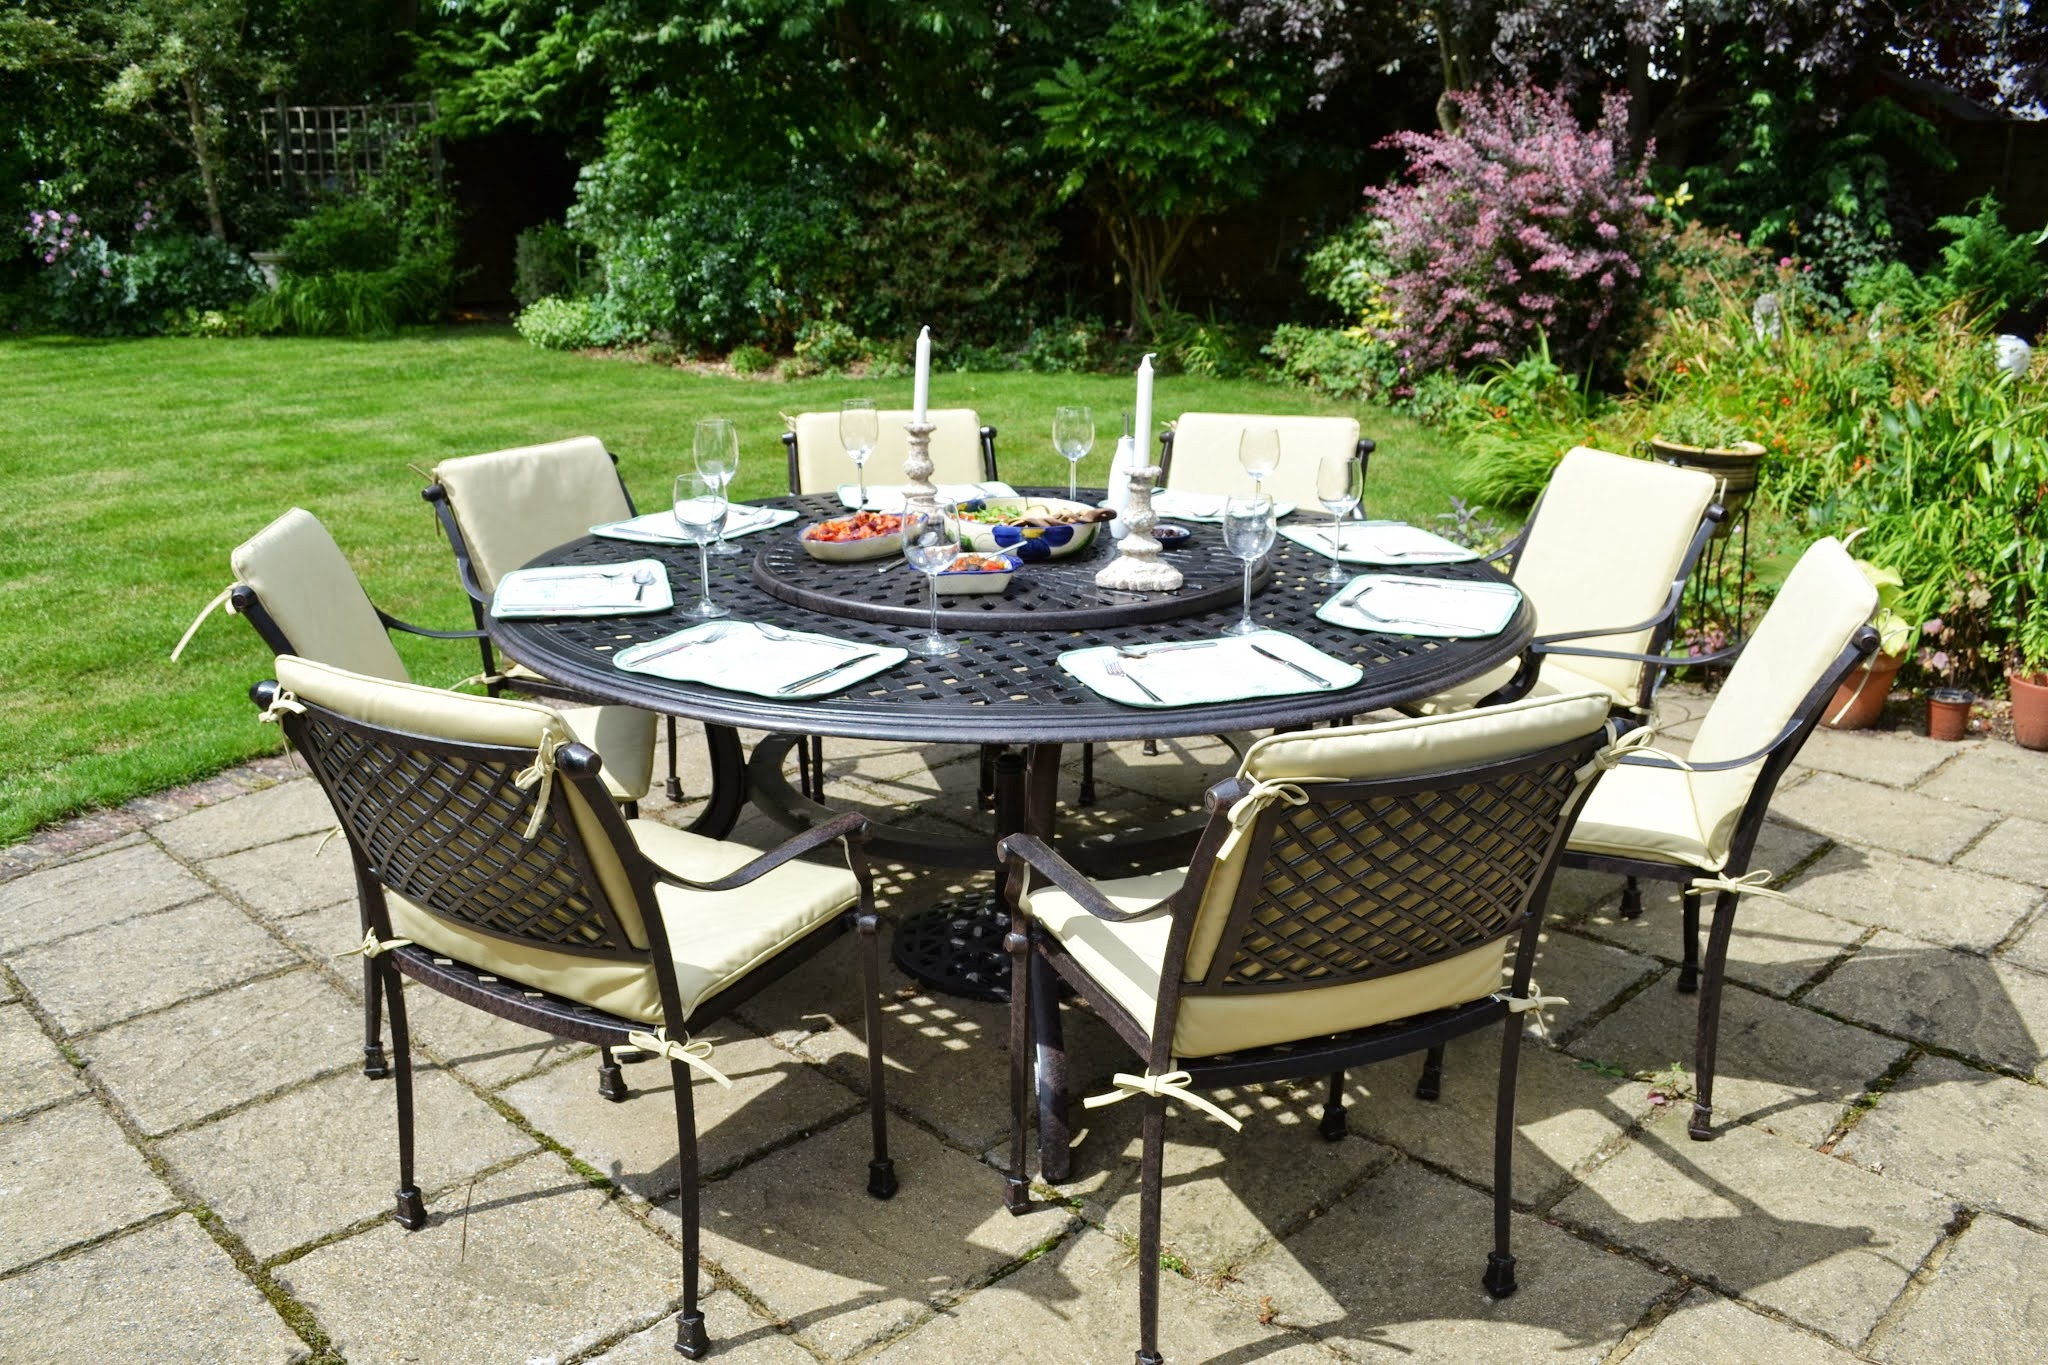 comparatif tables de jardin plateau tournant le blog de lazy susan. Black Bedroom Furniture Sets. Home Design Ideas